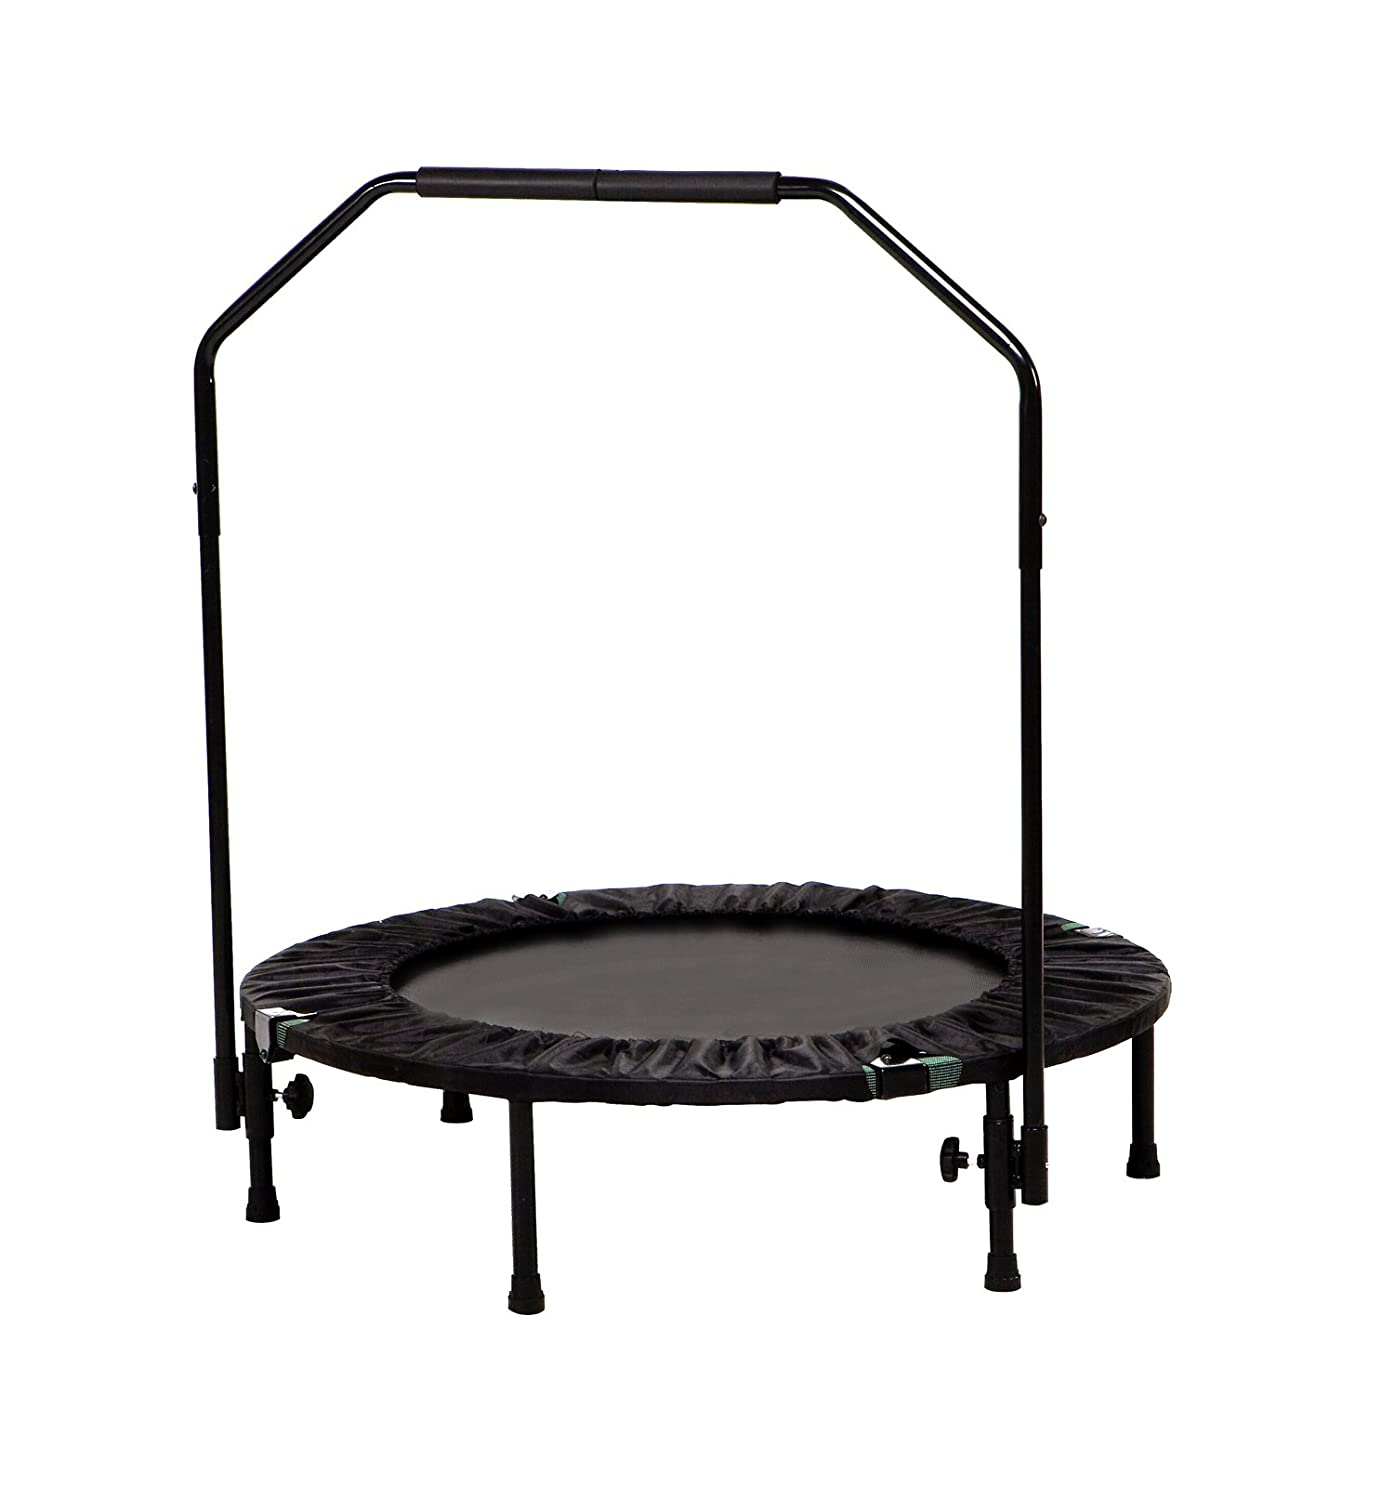 mini trampoline 40 inch handrail cardio fitness workout exercise home gym yoga ebay. Black Bedroom Furniture Sets. Home Design Ideas